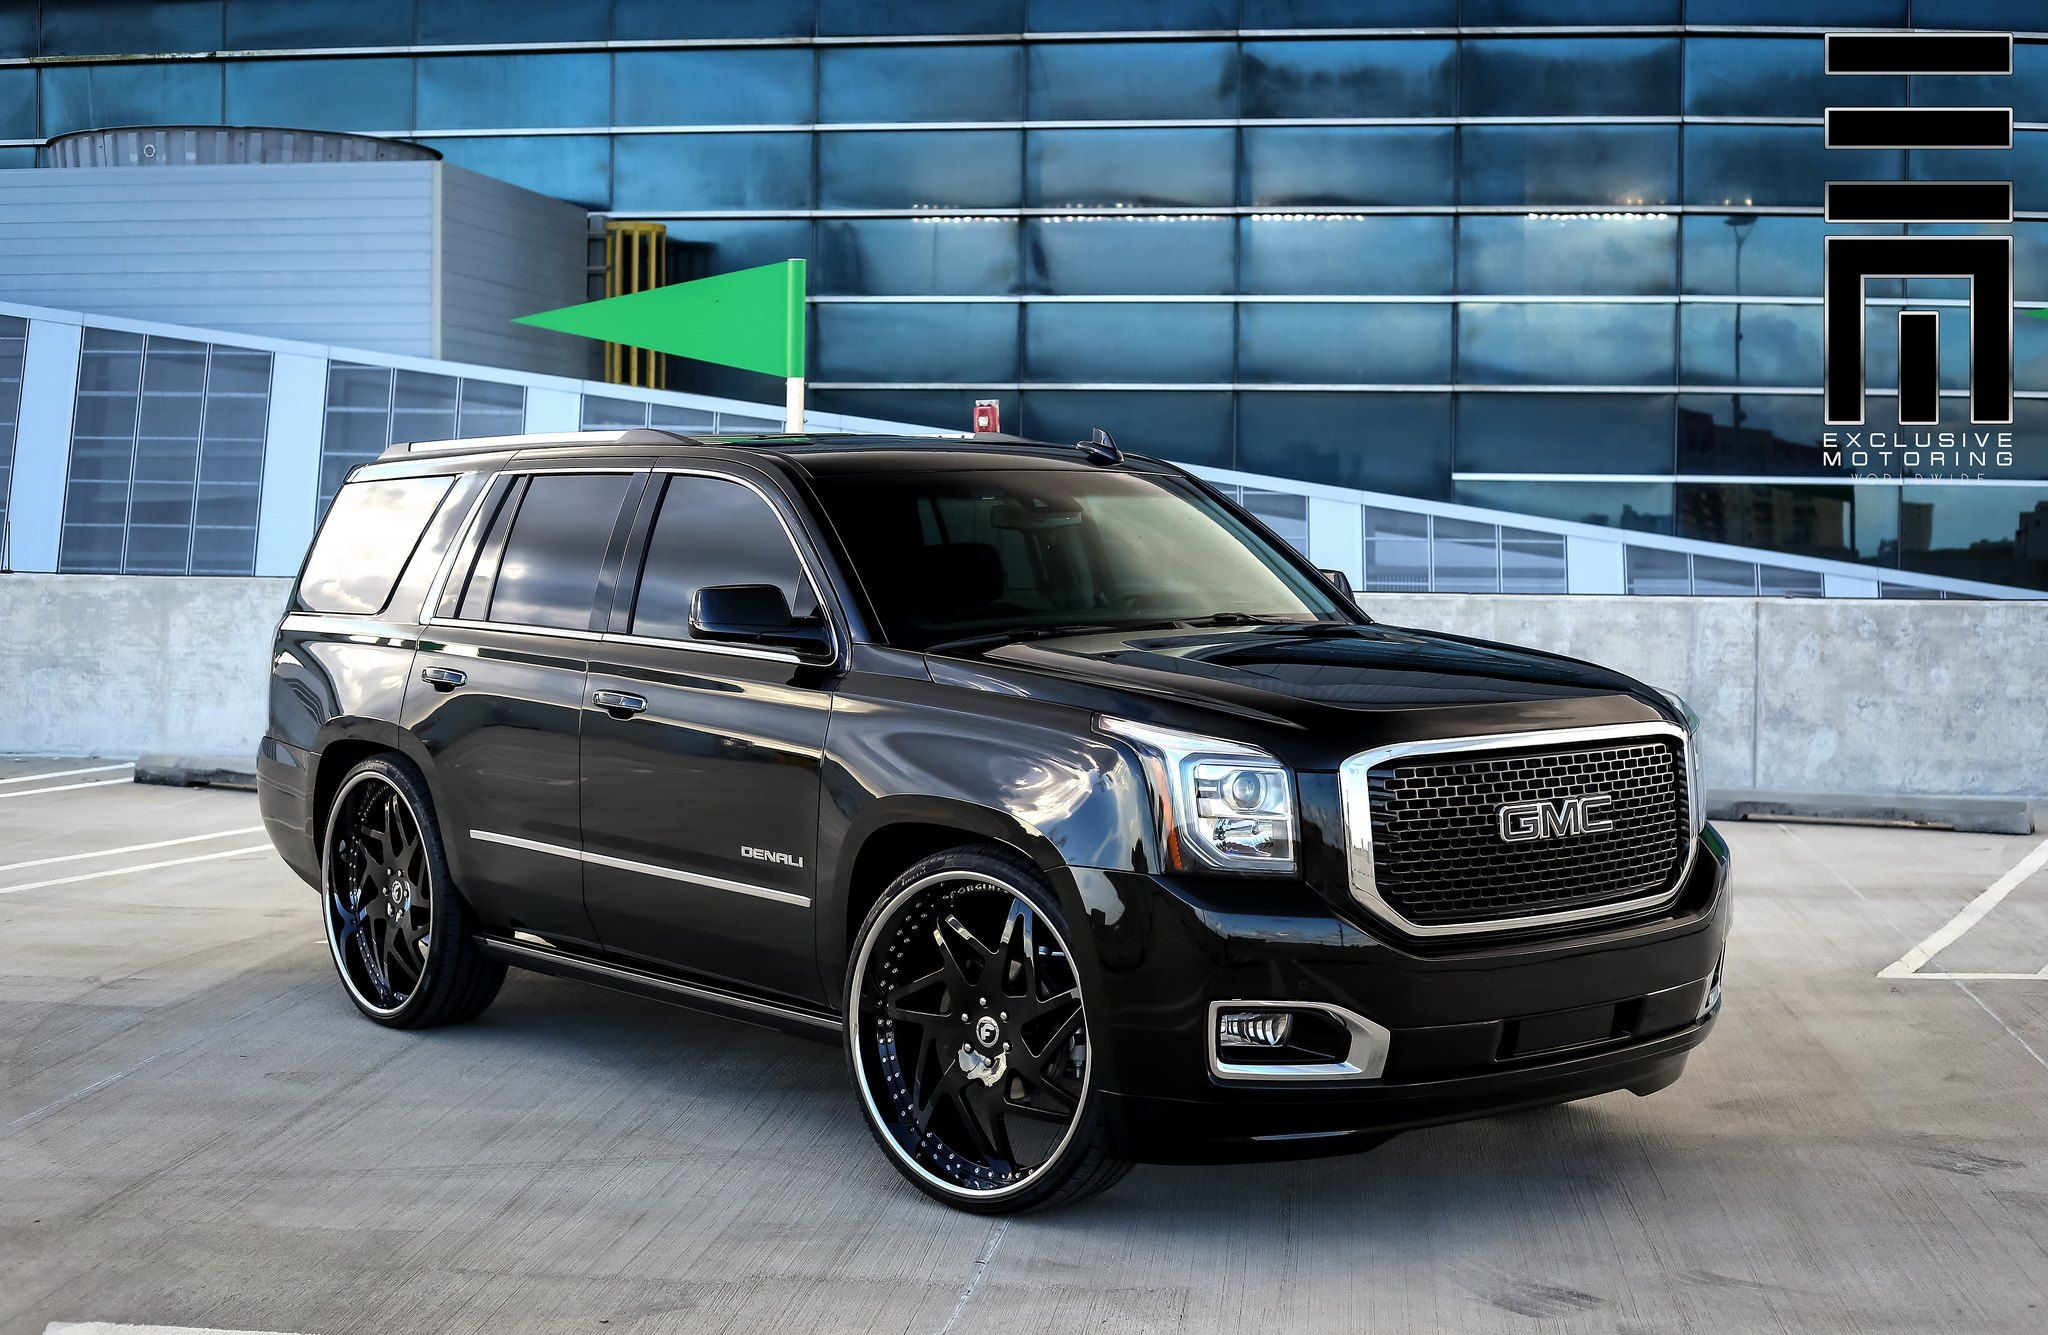 Late Model Yukon Denali On Forgiato Rims By Exclusive Motoring Yukon Denali Gmc Yukon Gmc Yukon Denali